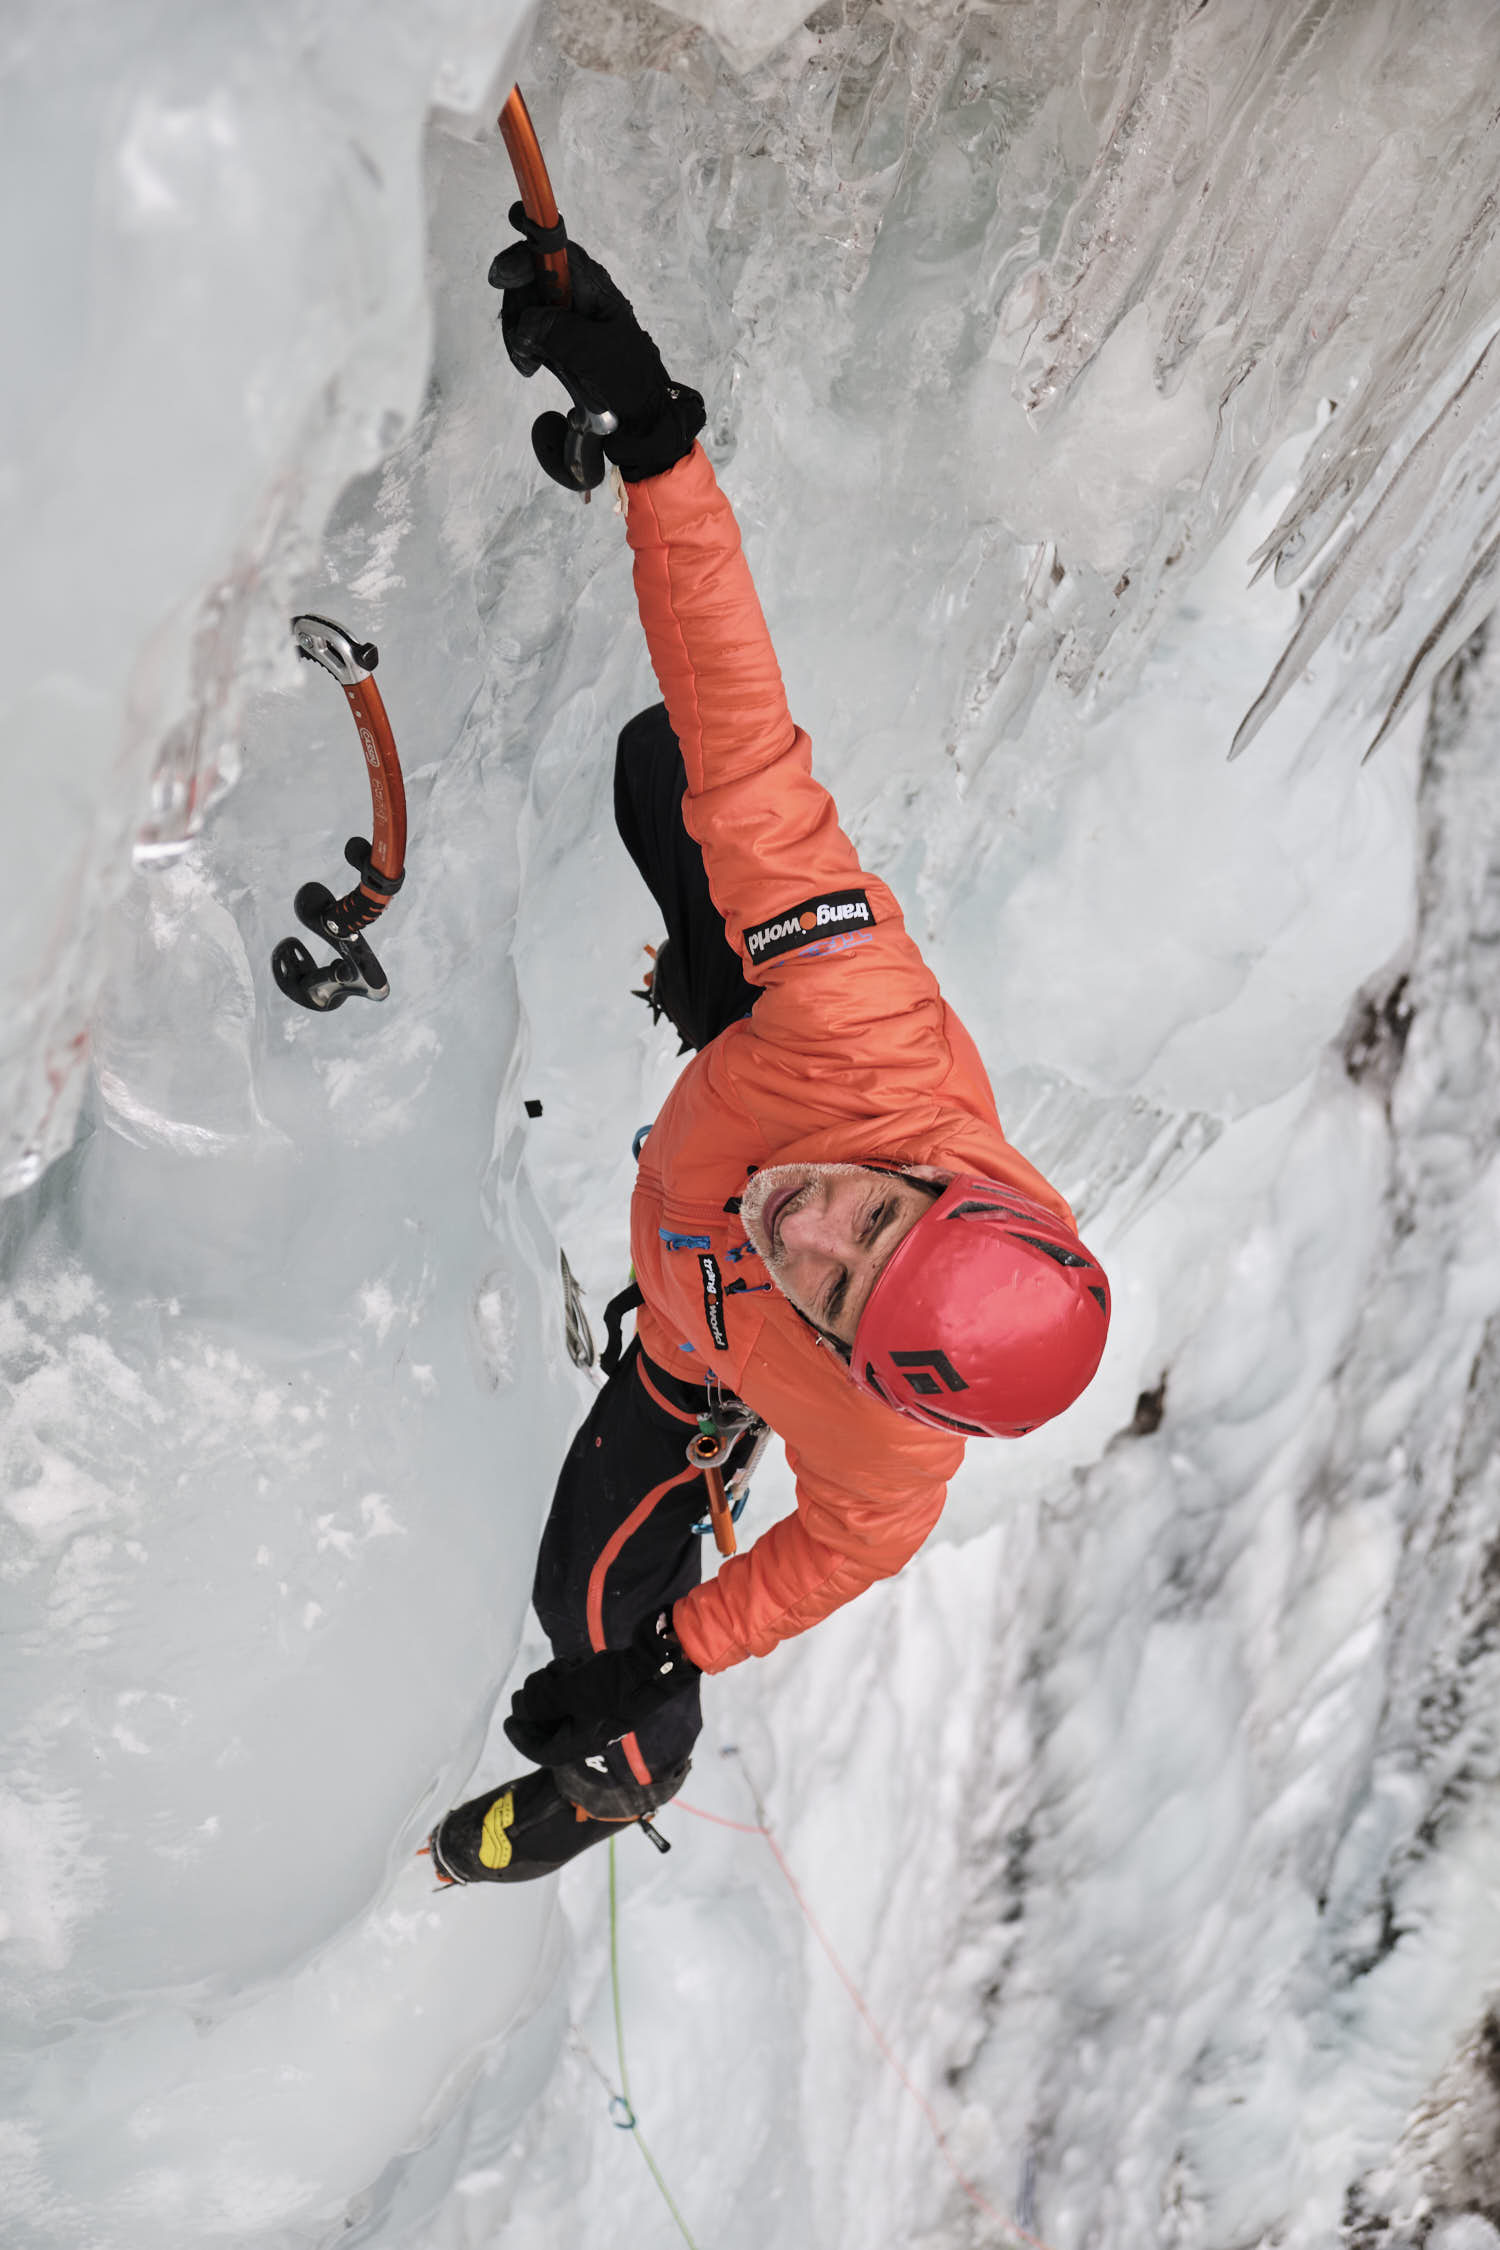 A man hanging from an ice axe while ice climbing an iced water fall.